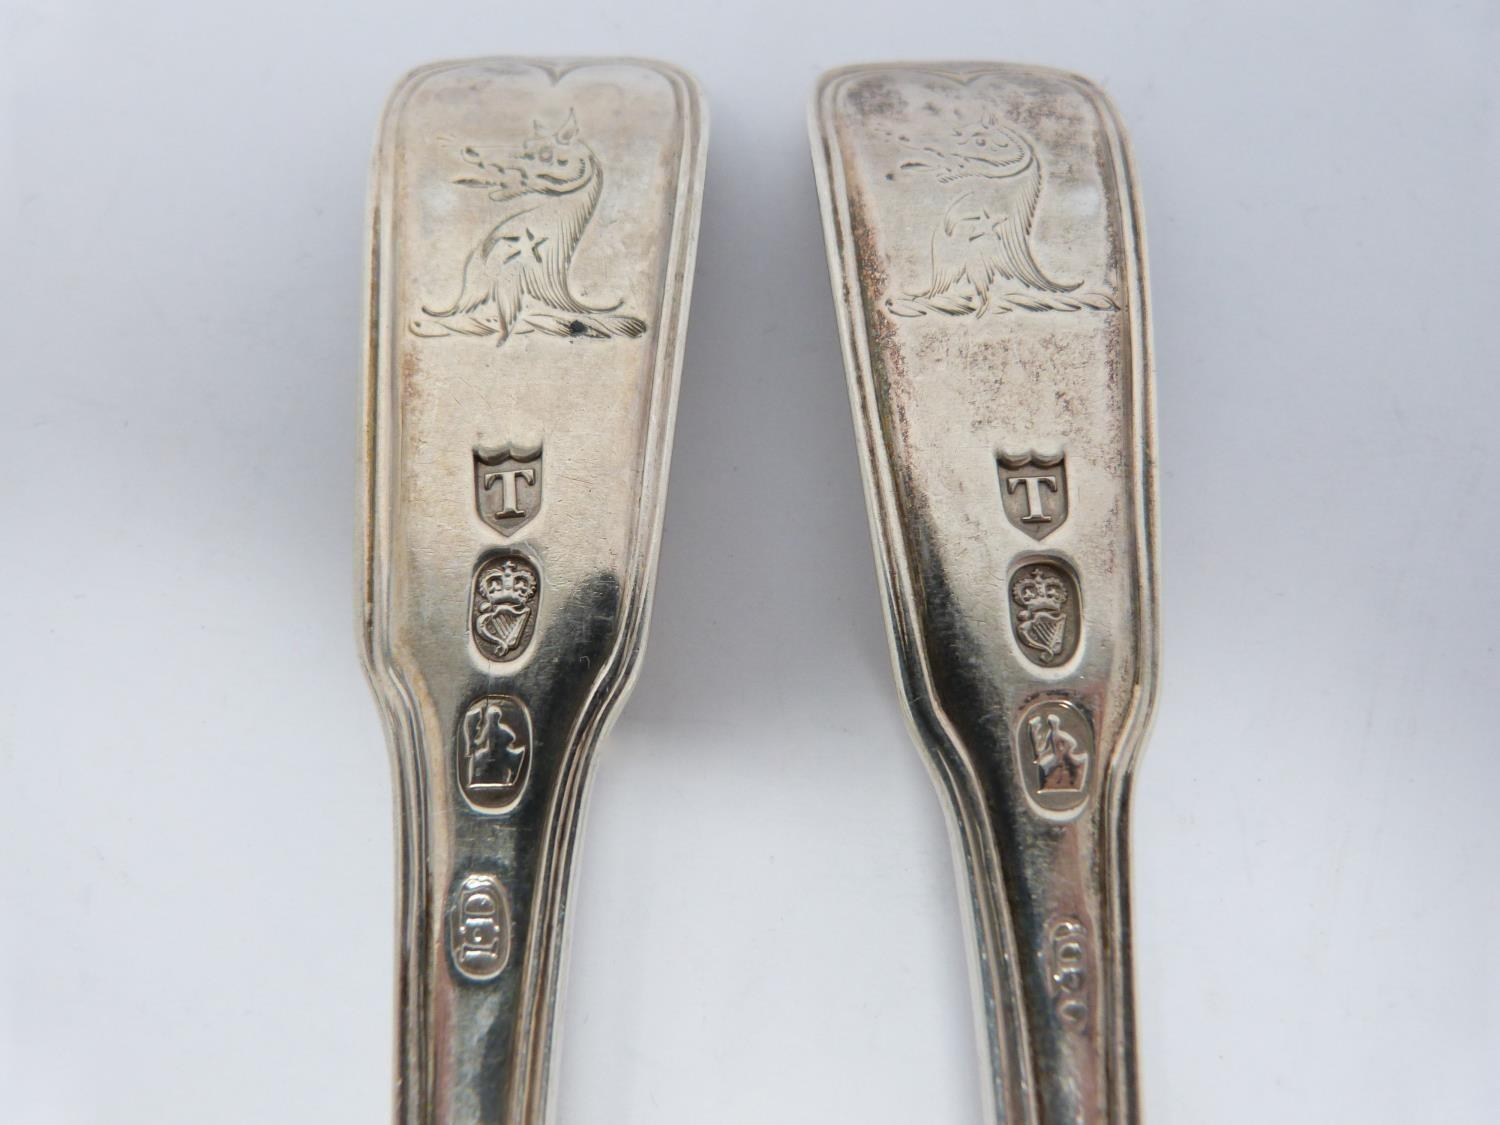 A collection of silver and white metal cutlery, including two Georgian serving spoons, 1791, ch - Image 8 of 8